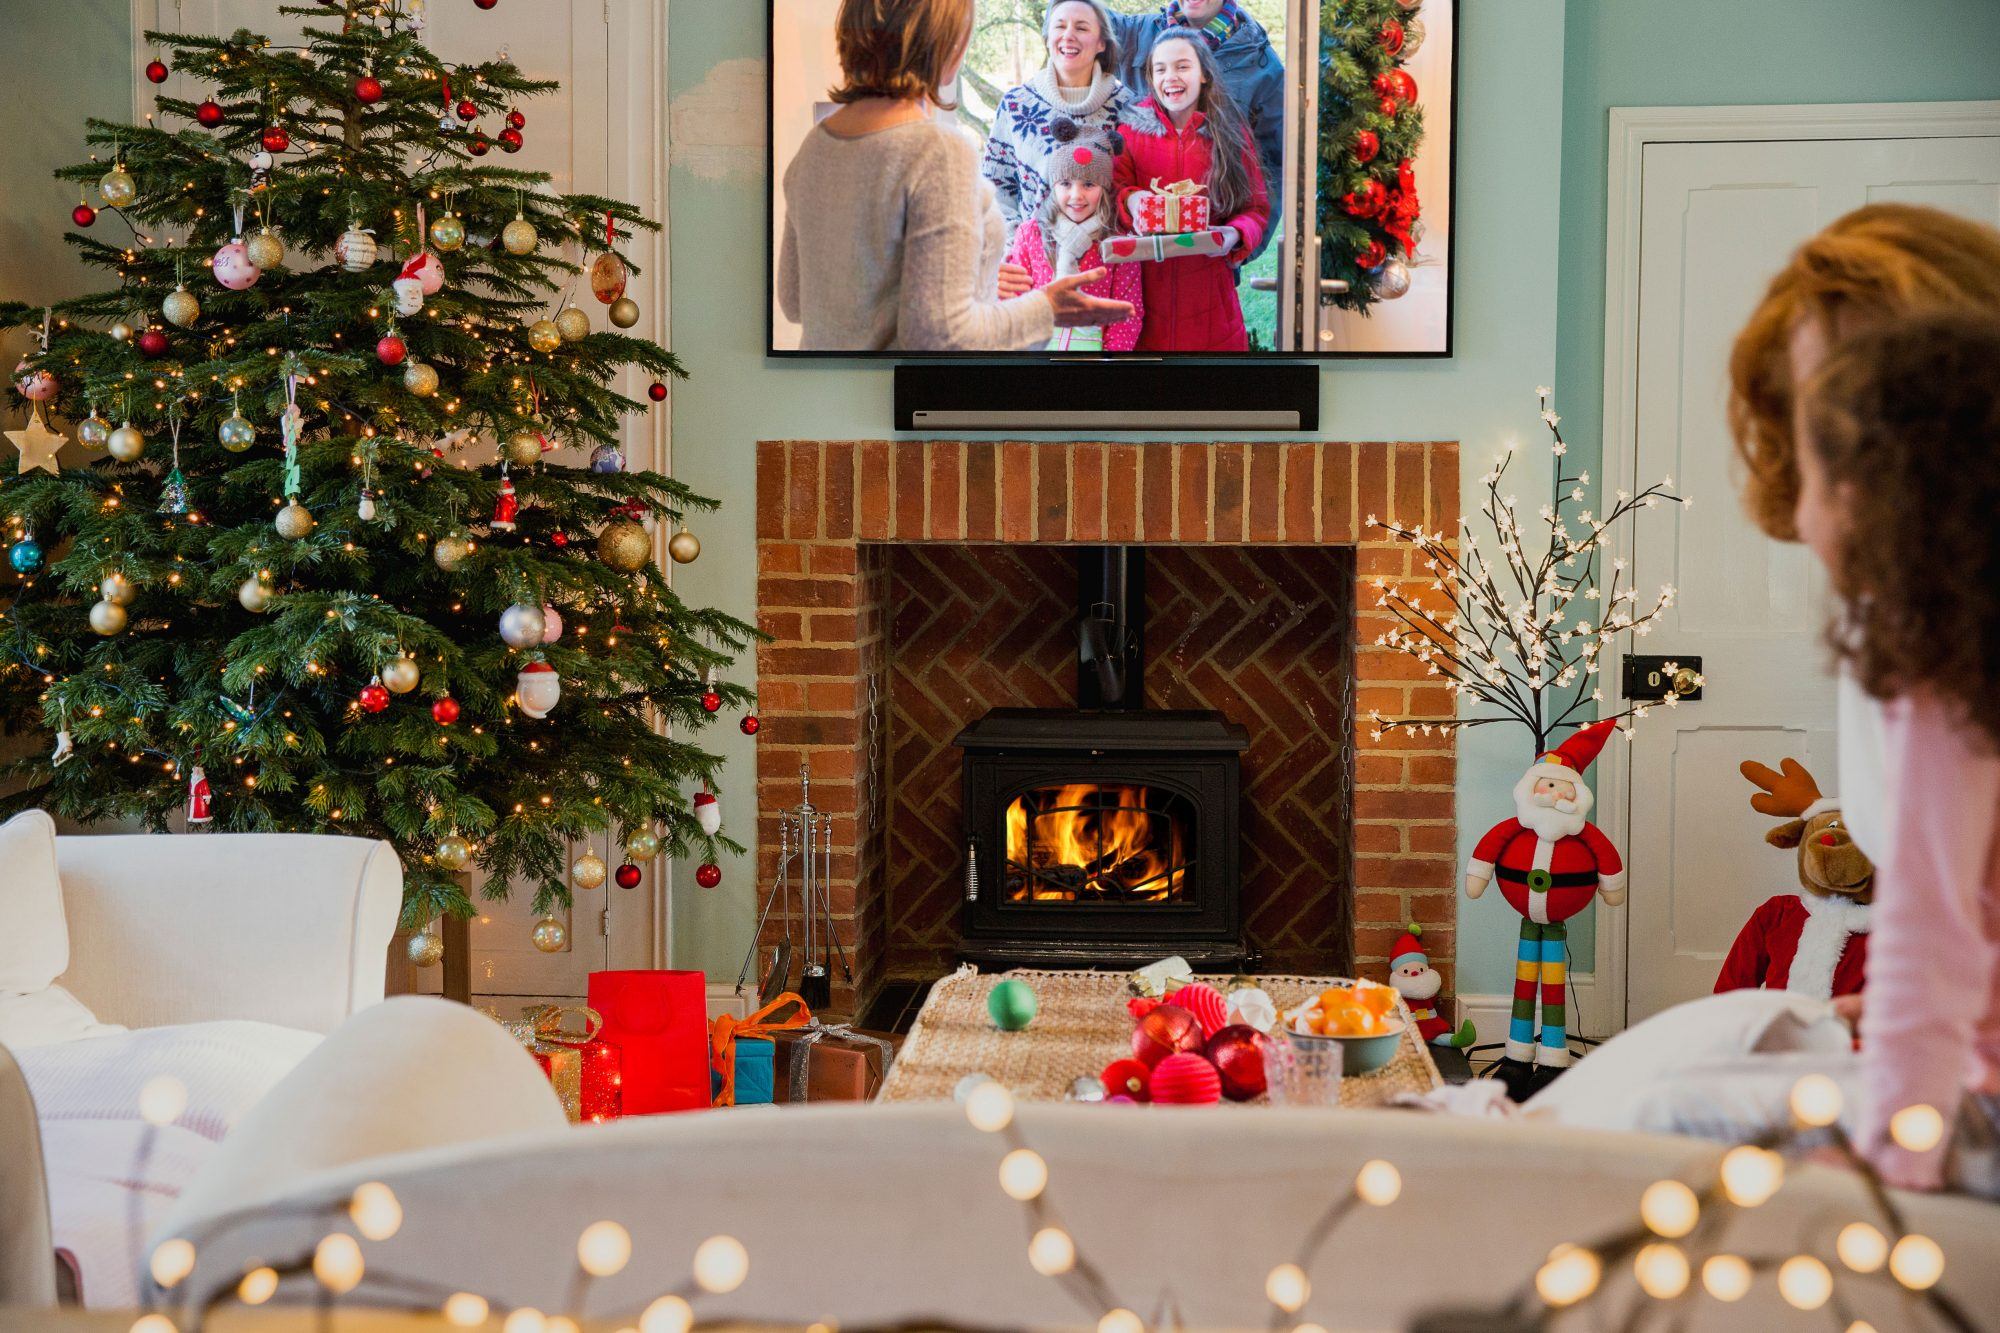 TV Over a Brick Fireplace with Christmas Tree